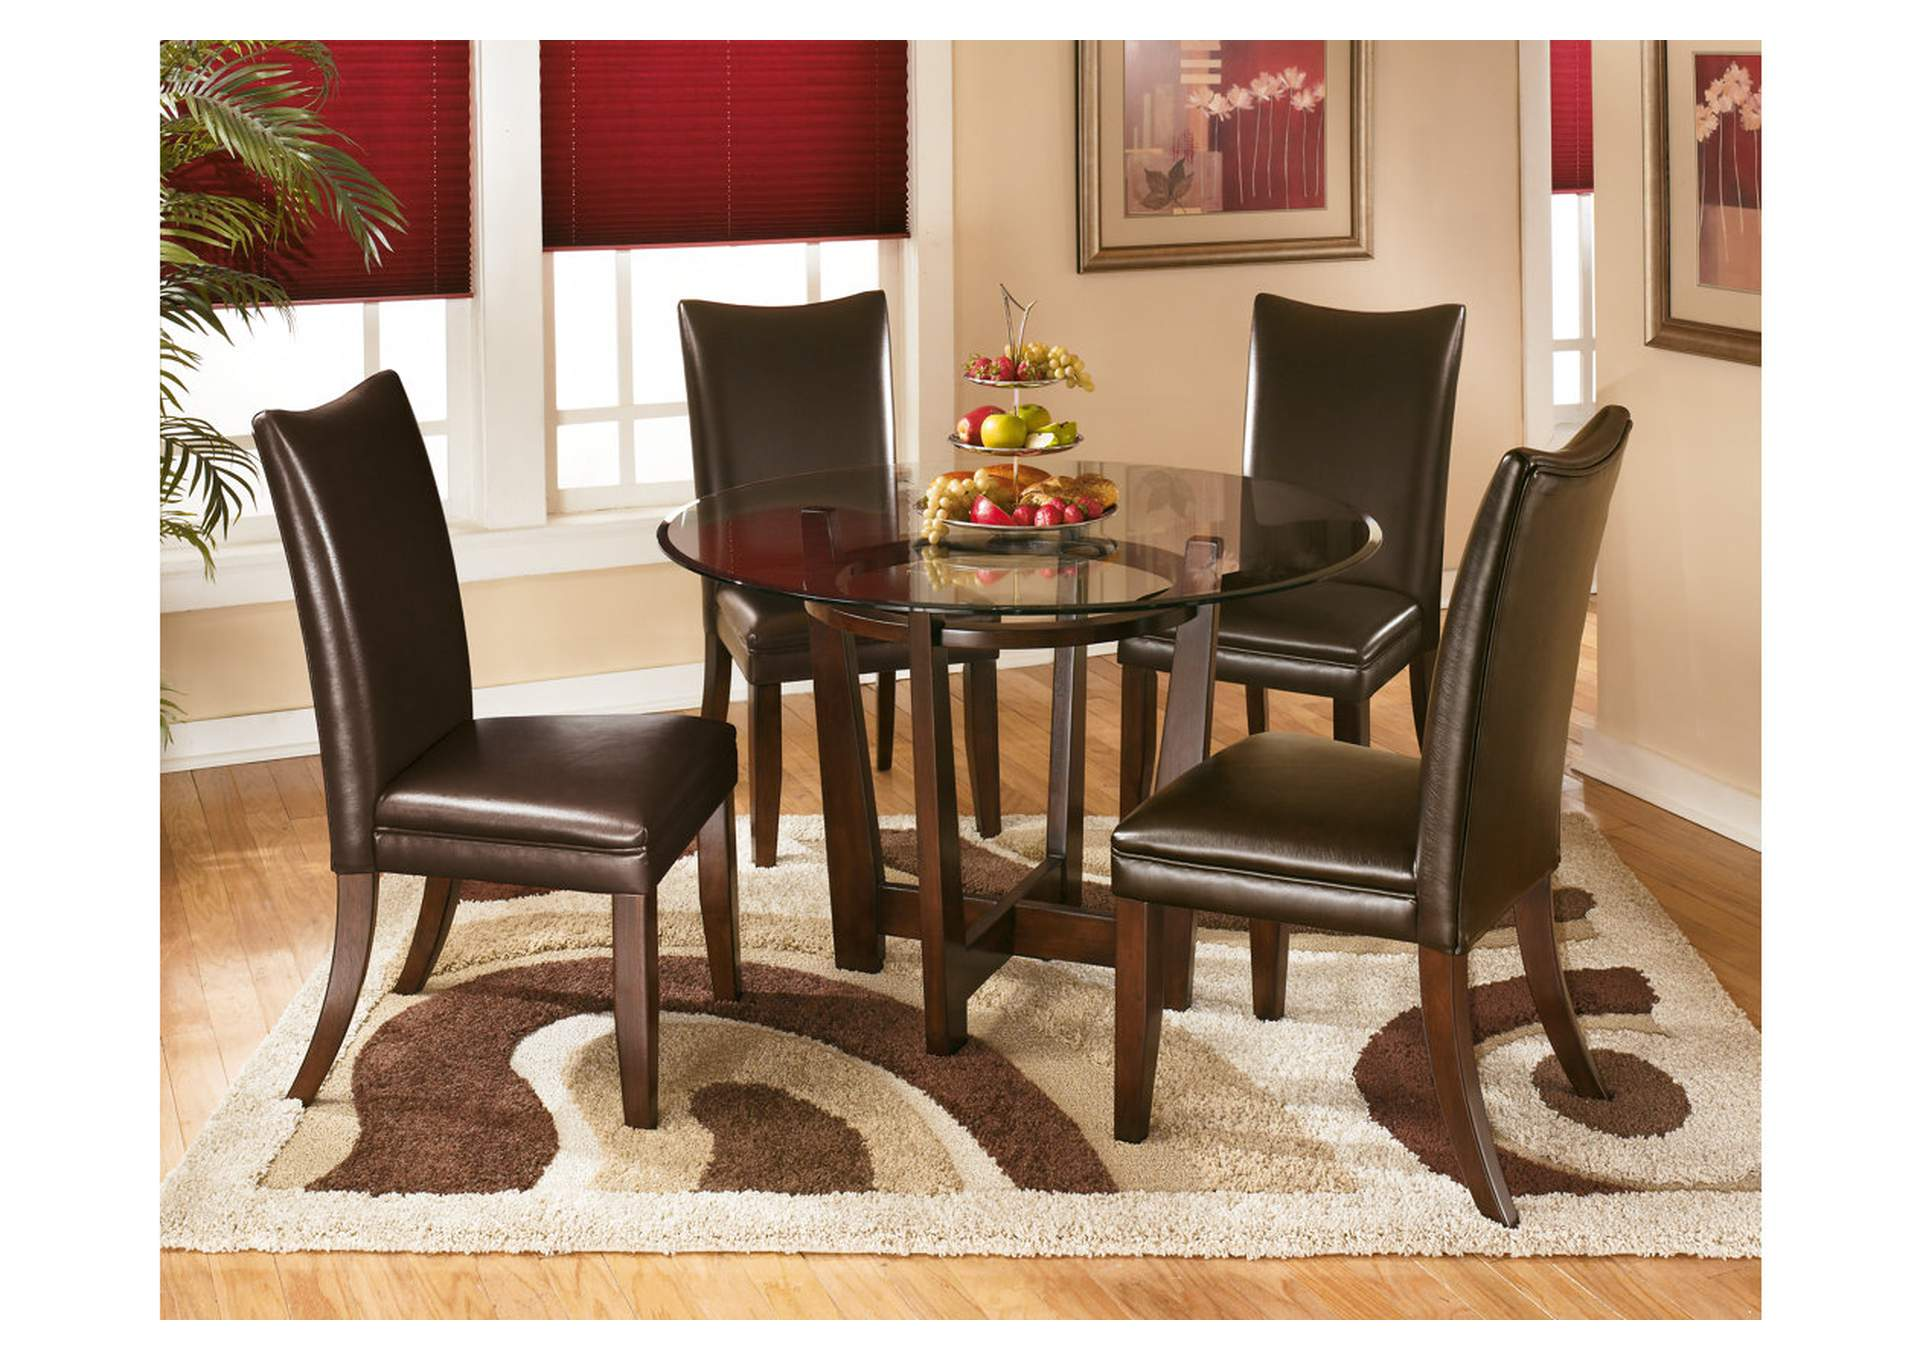 Charell Round Dining Table w/ 4 Brown Side Chairs,Signature Design By Ashley